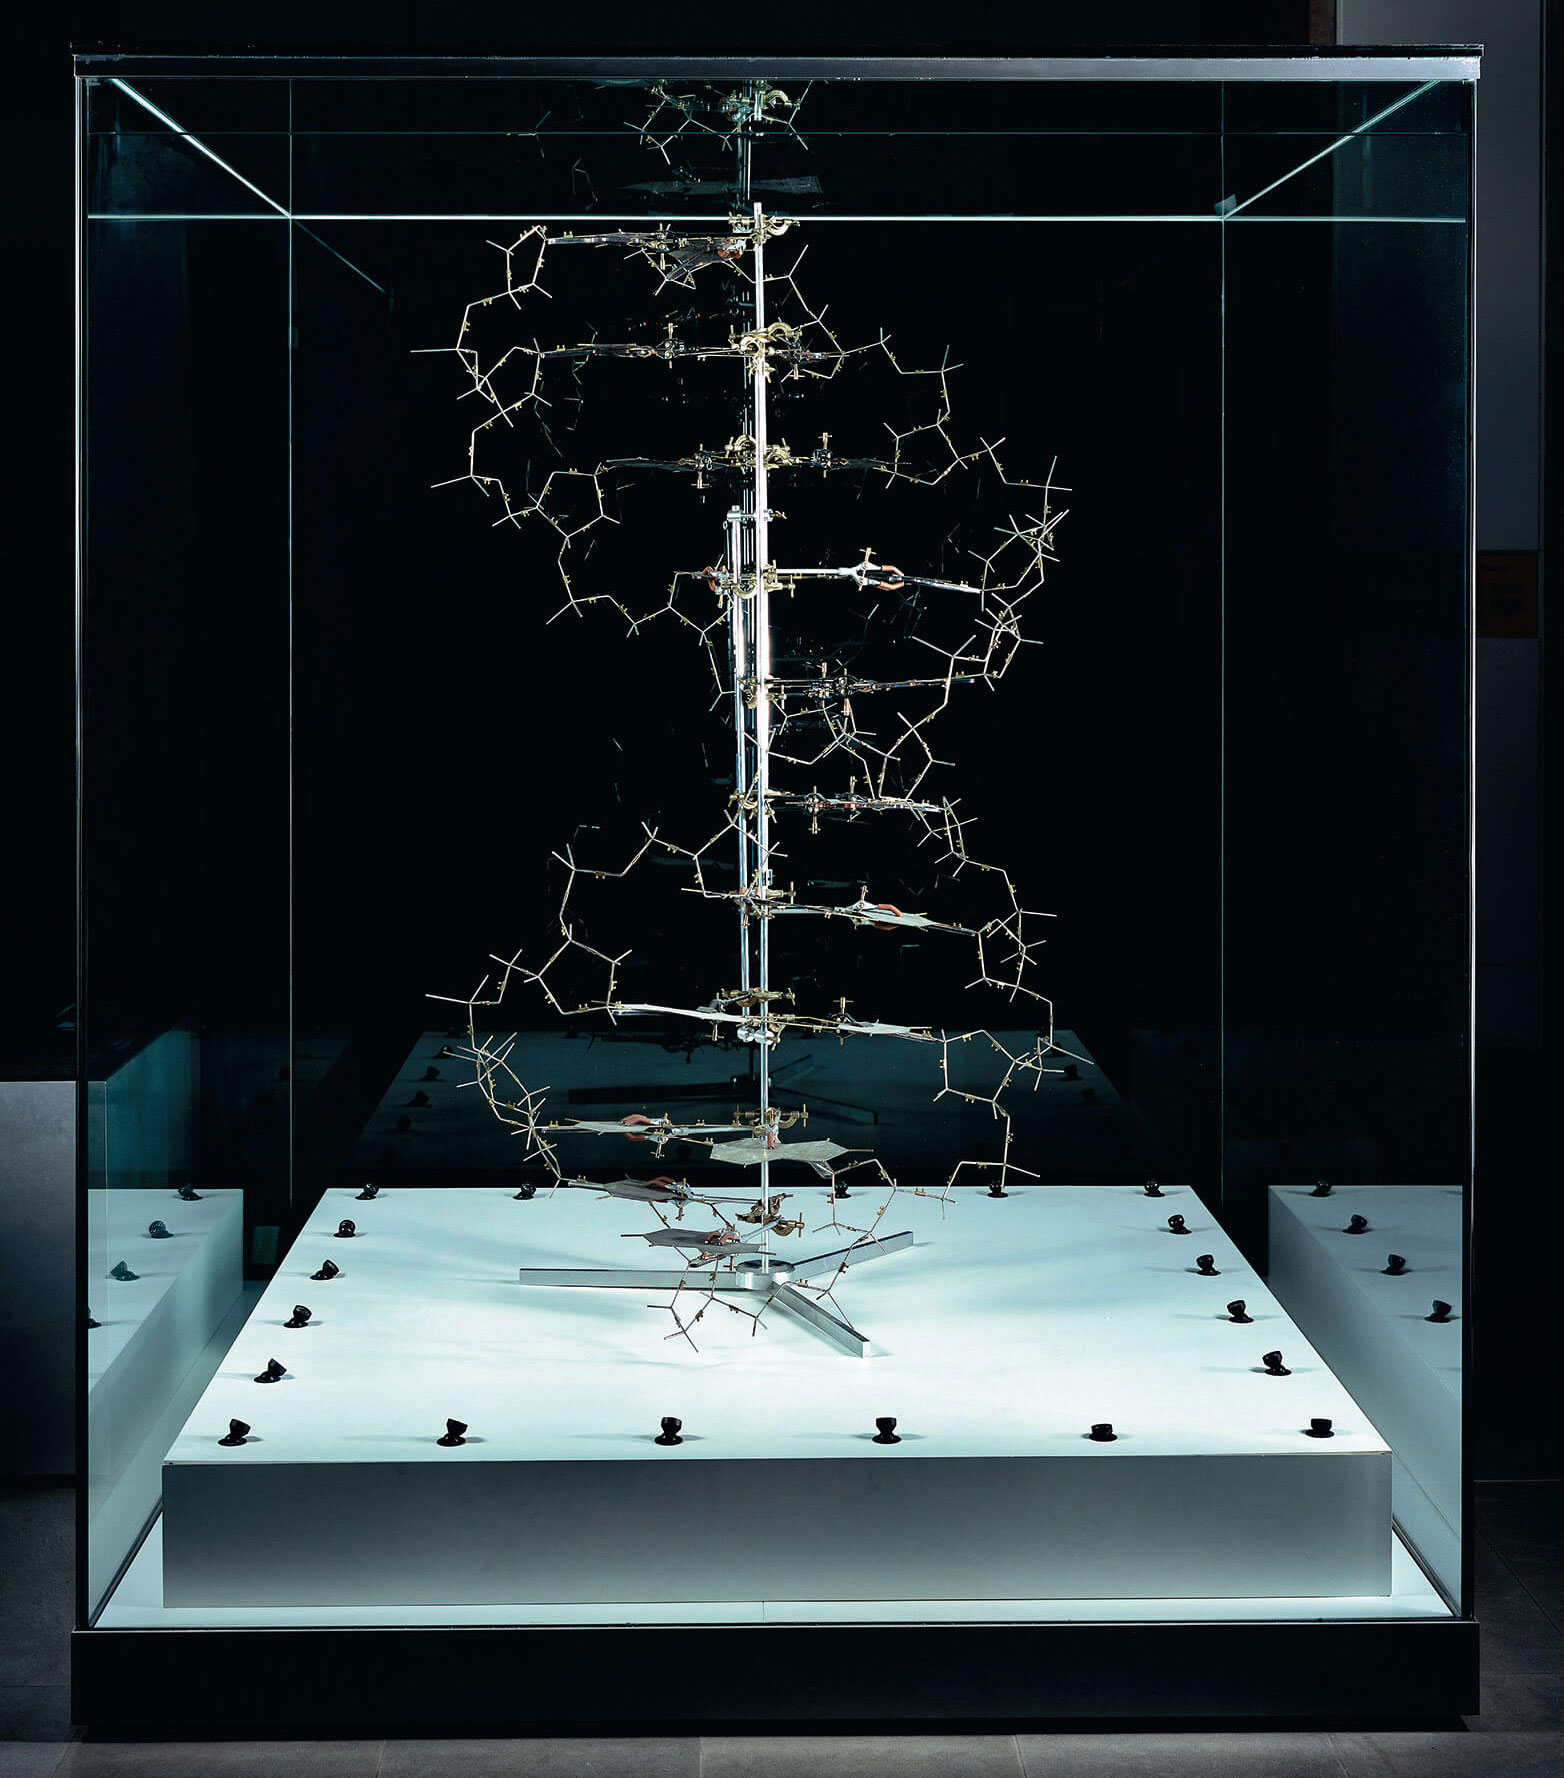 The original model created by James Watson and Francis Crick illustrates the double-helix structure of DNA. Photographed by Robert Clark, as featured in Evolution: A Visual Record